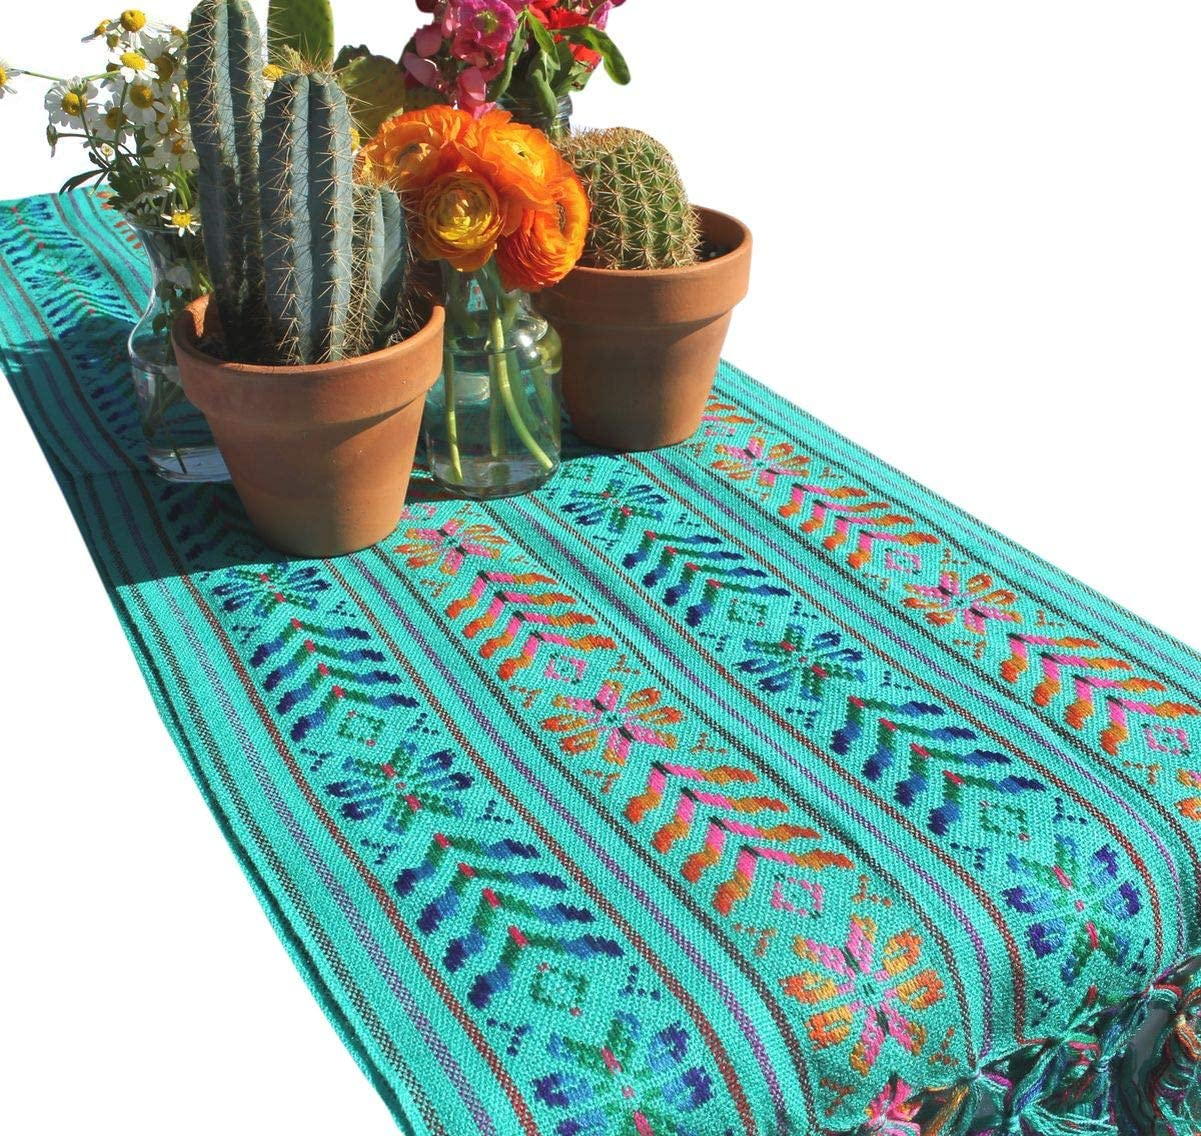 Del Mex Woven Rebozo Style Mexican Table Runner Scarf (Teal)